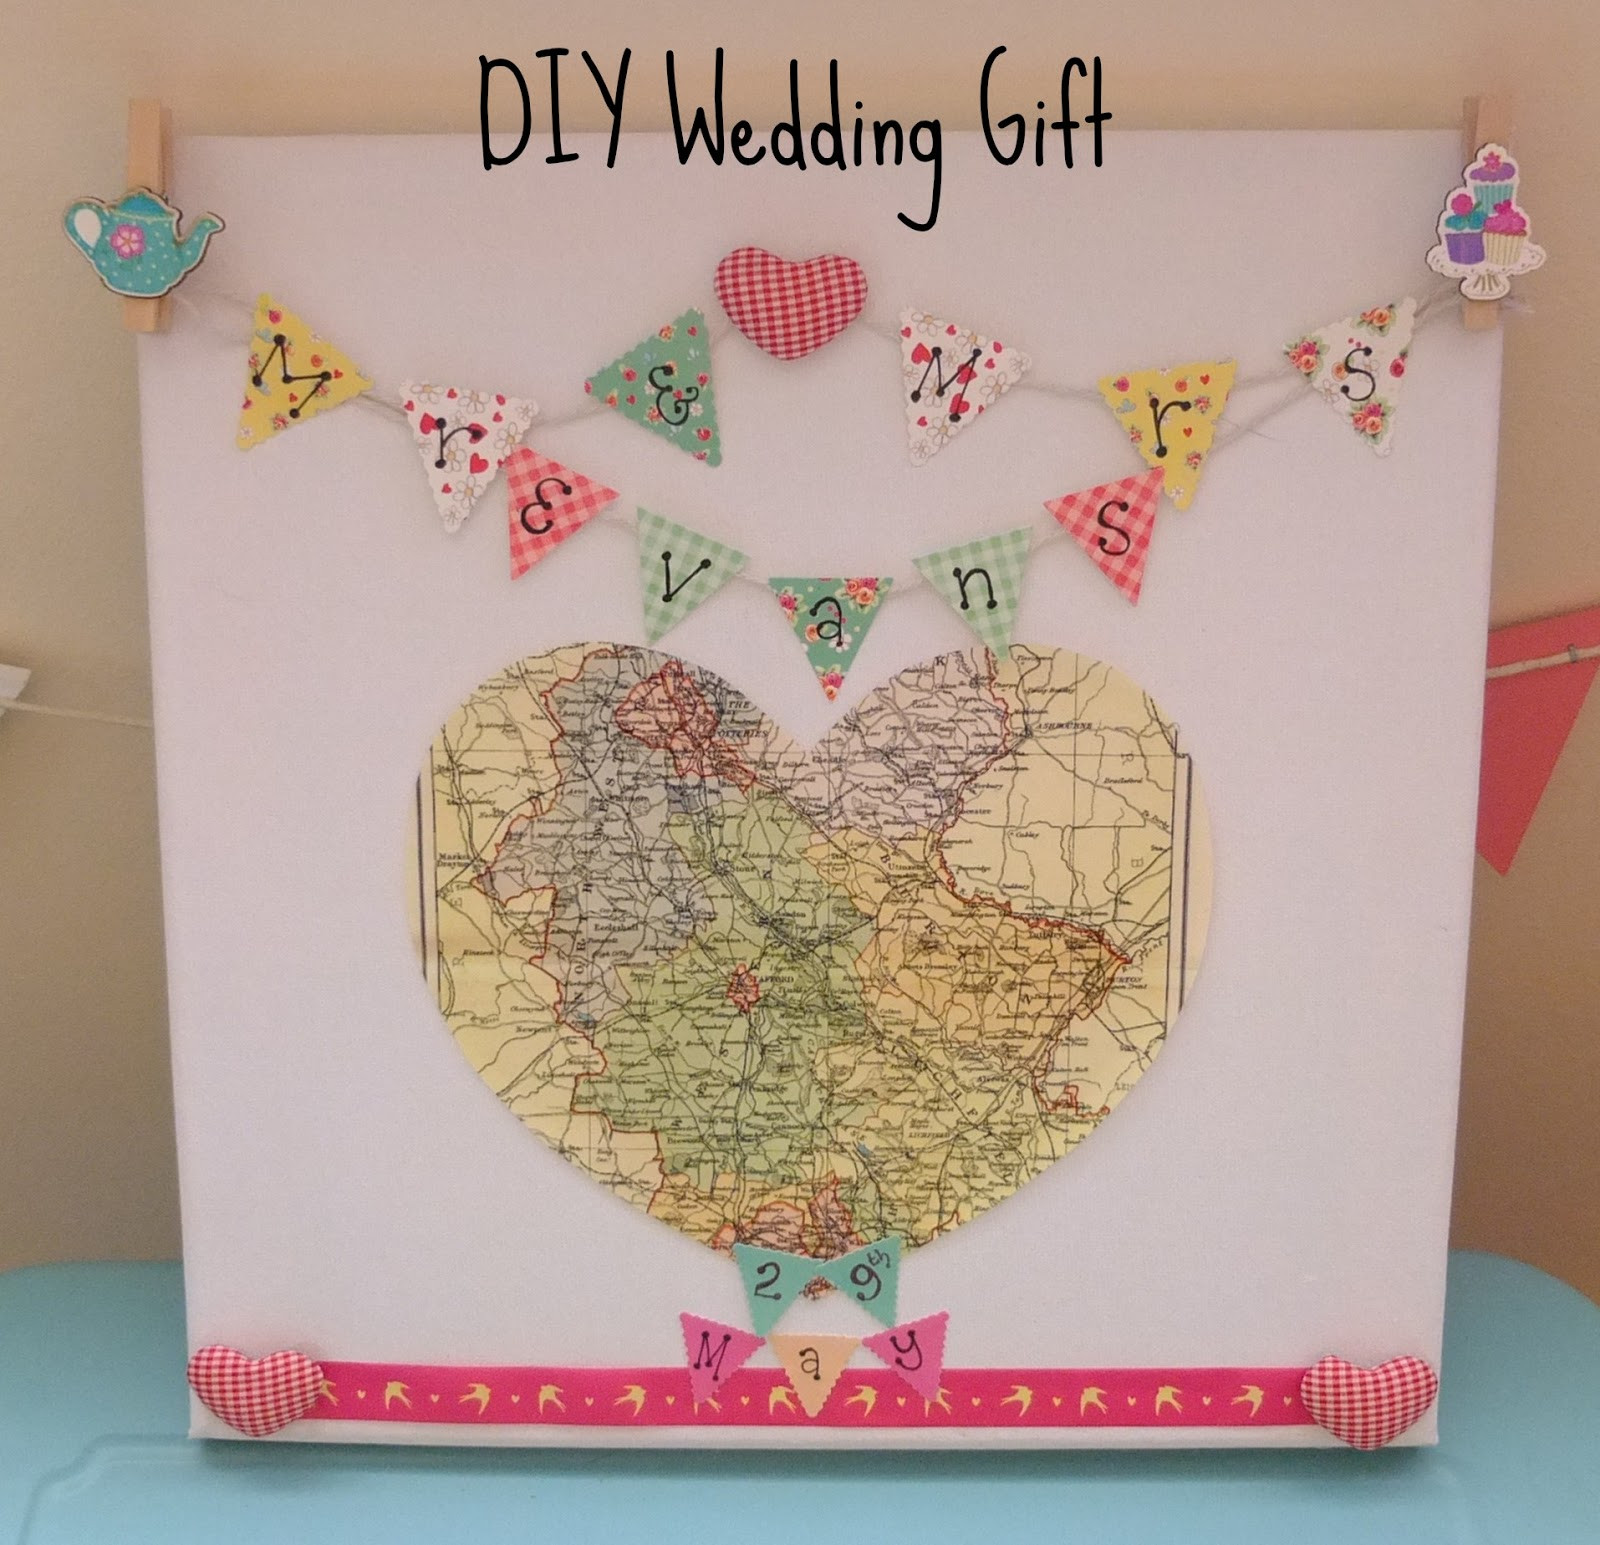 Best ideas about DIY Wedding Gifts . Save or Pin DIY Wedding Gift on a Bud Hello Terri Lowe Now.